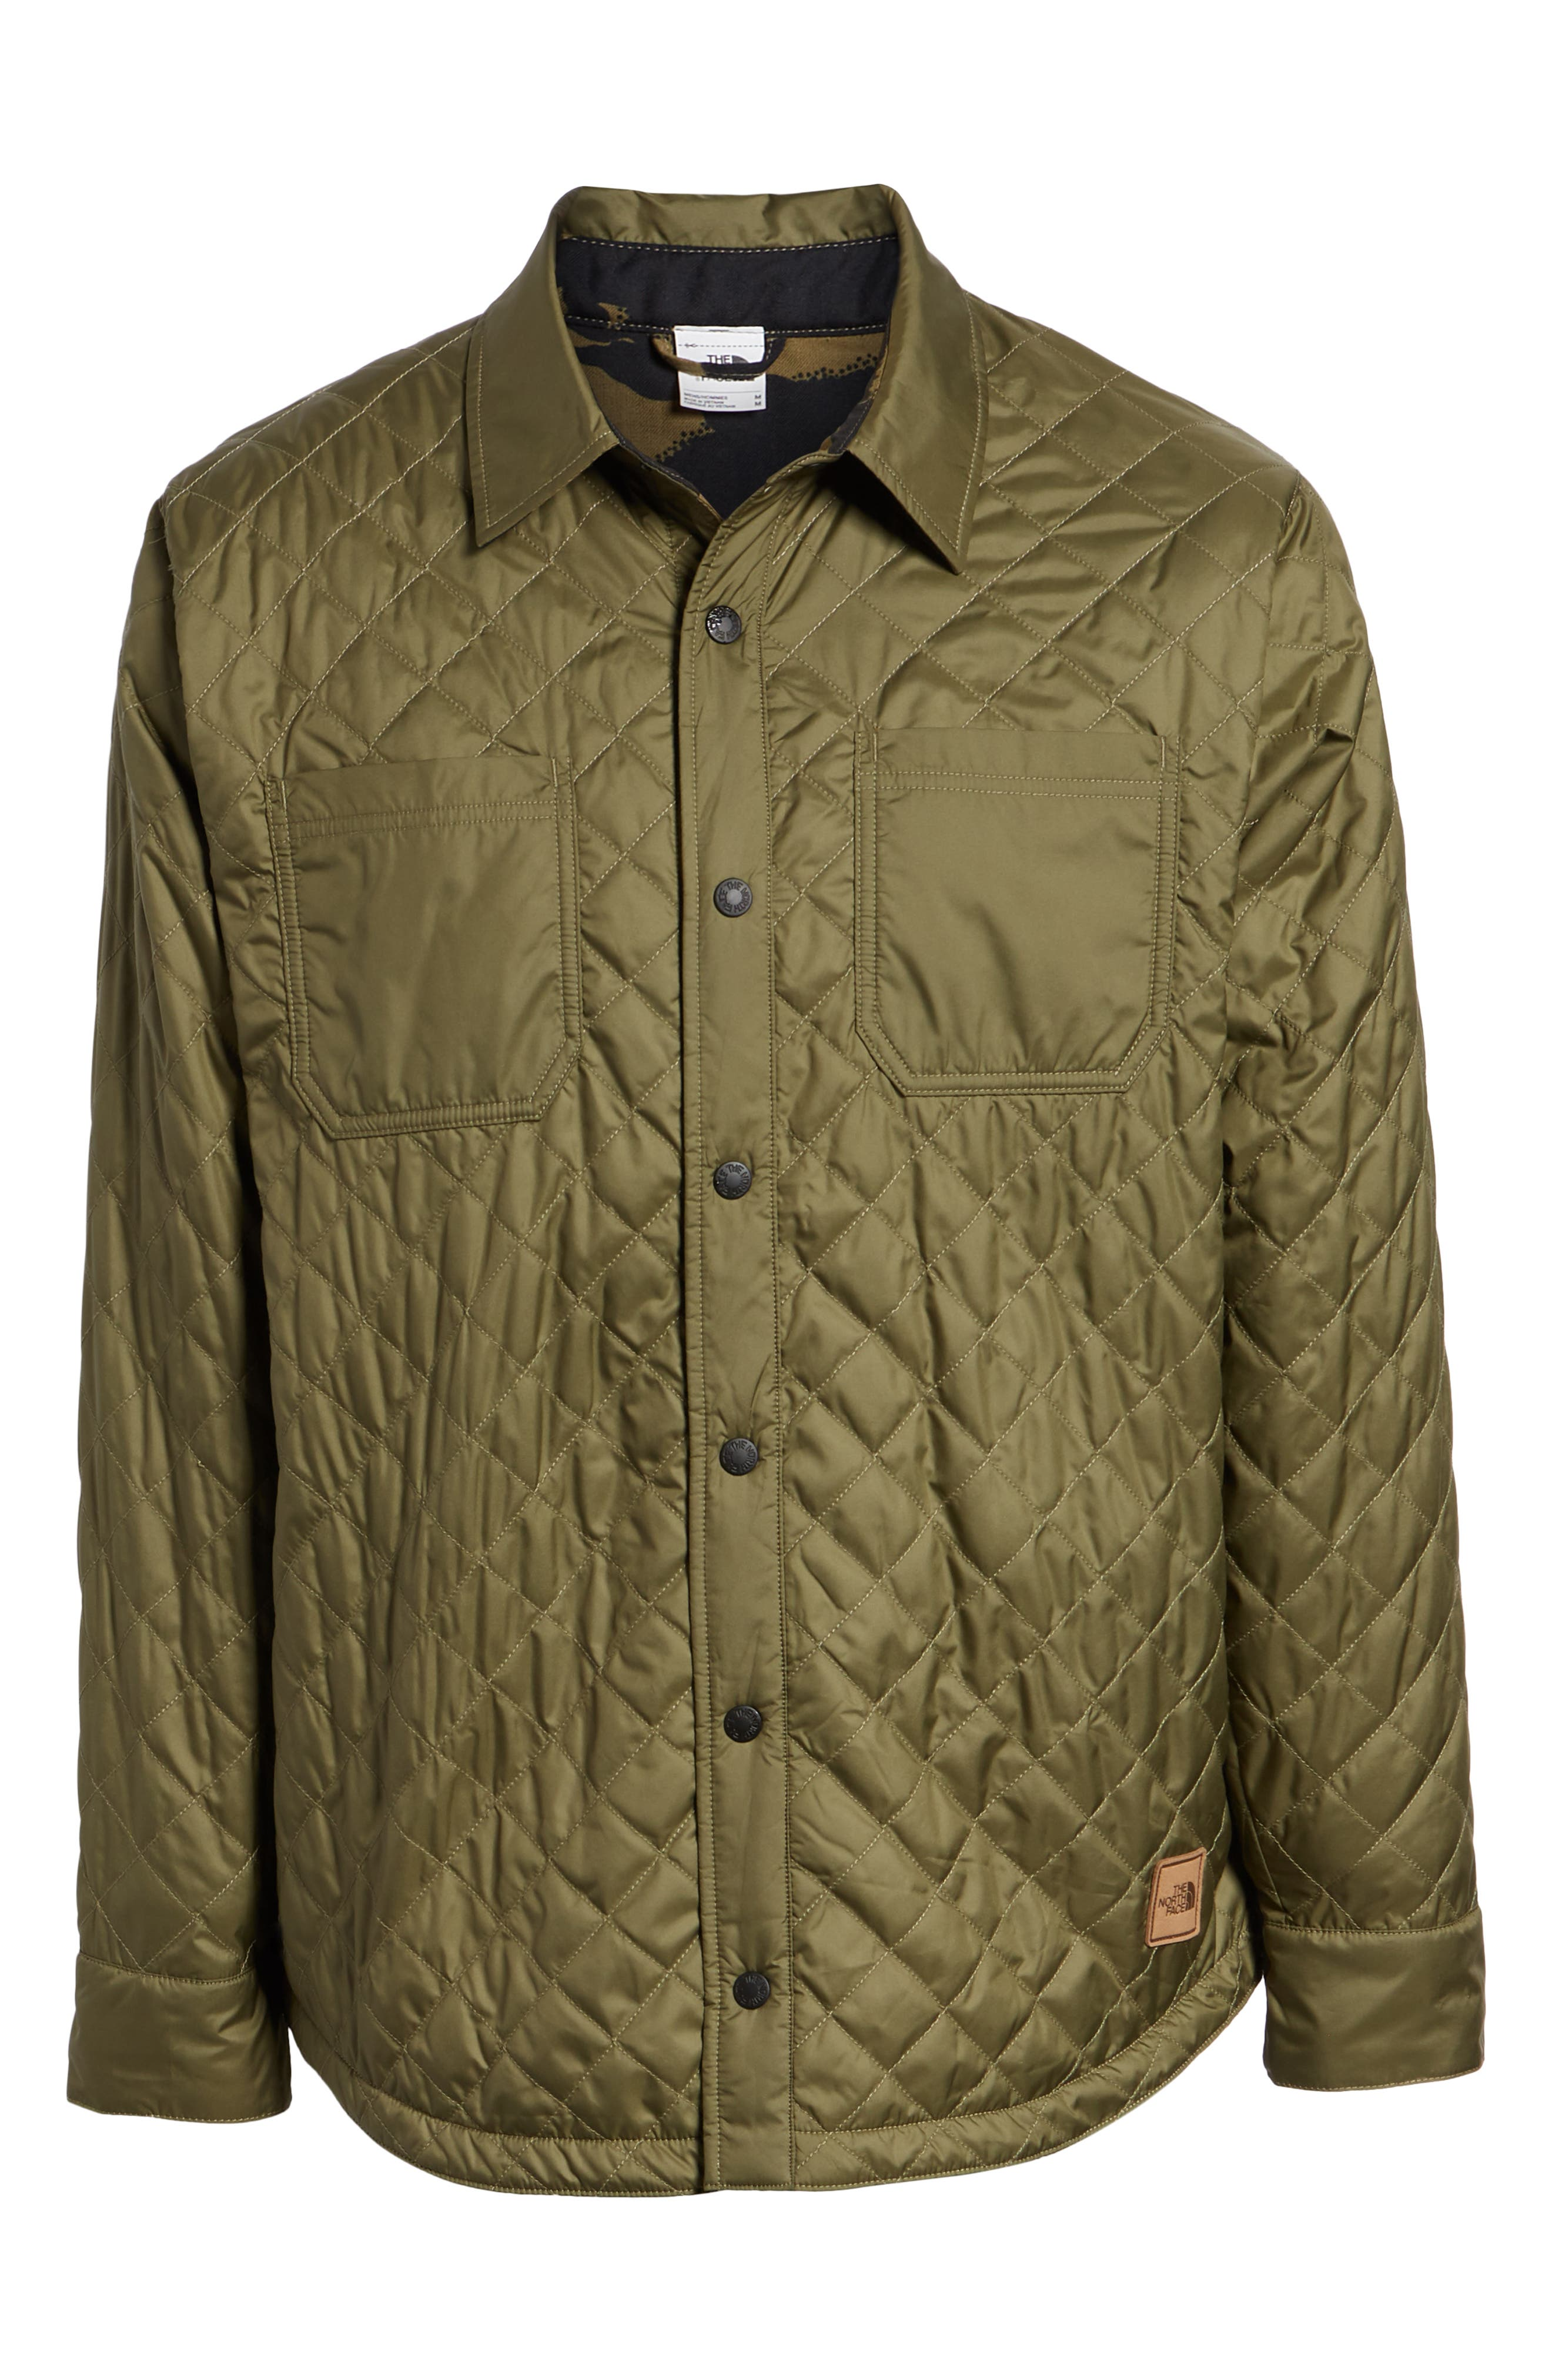 Fort Point Insulated Shirt Jacket,                             Alternate thumbnail 6, color,                             BURNT OLIVE GREEN